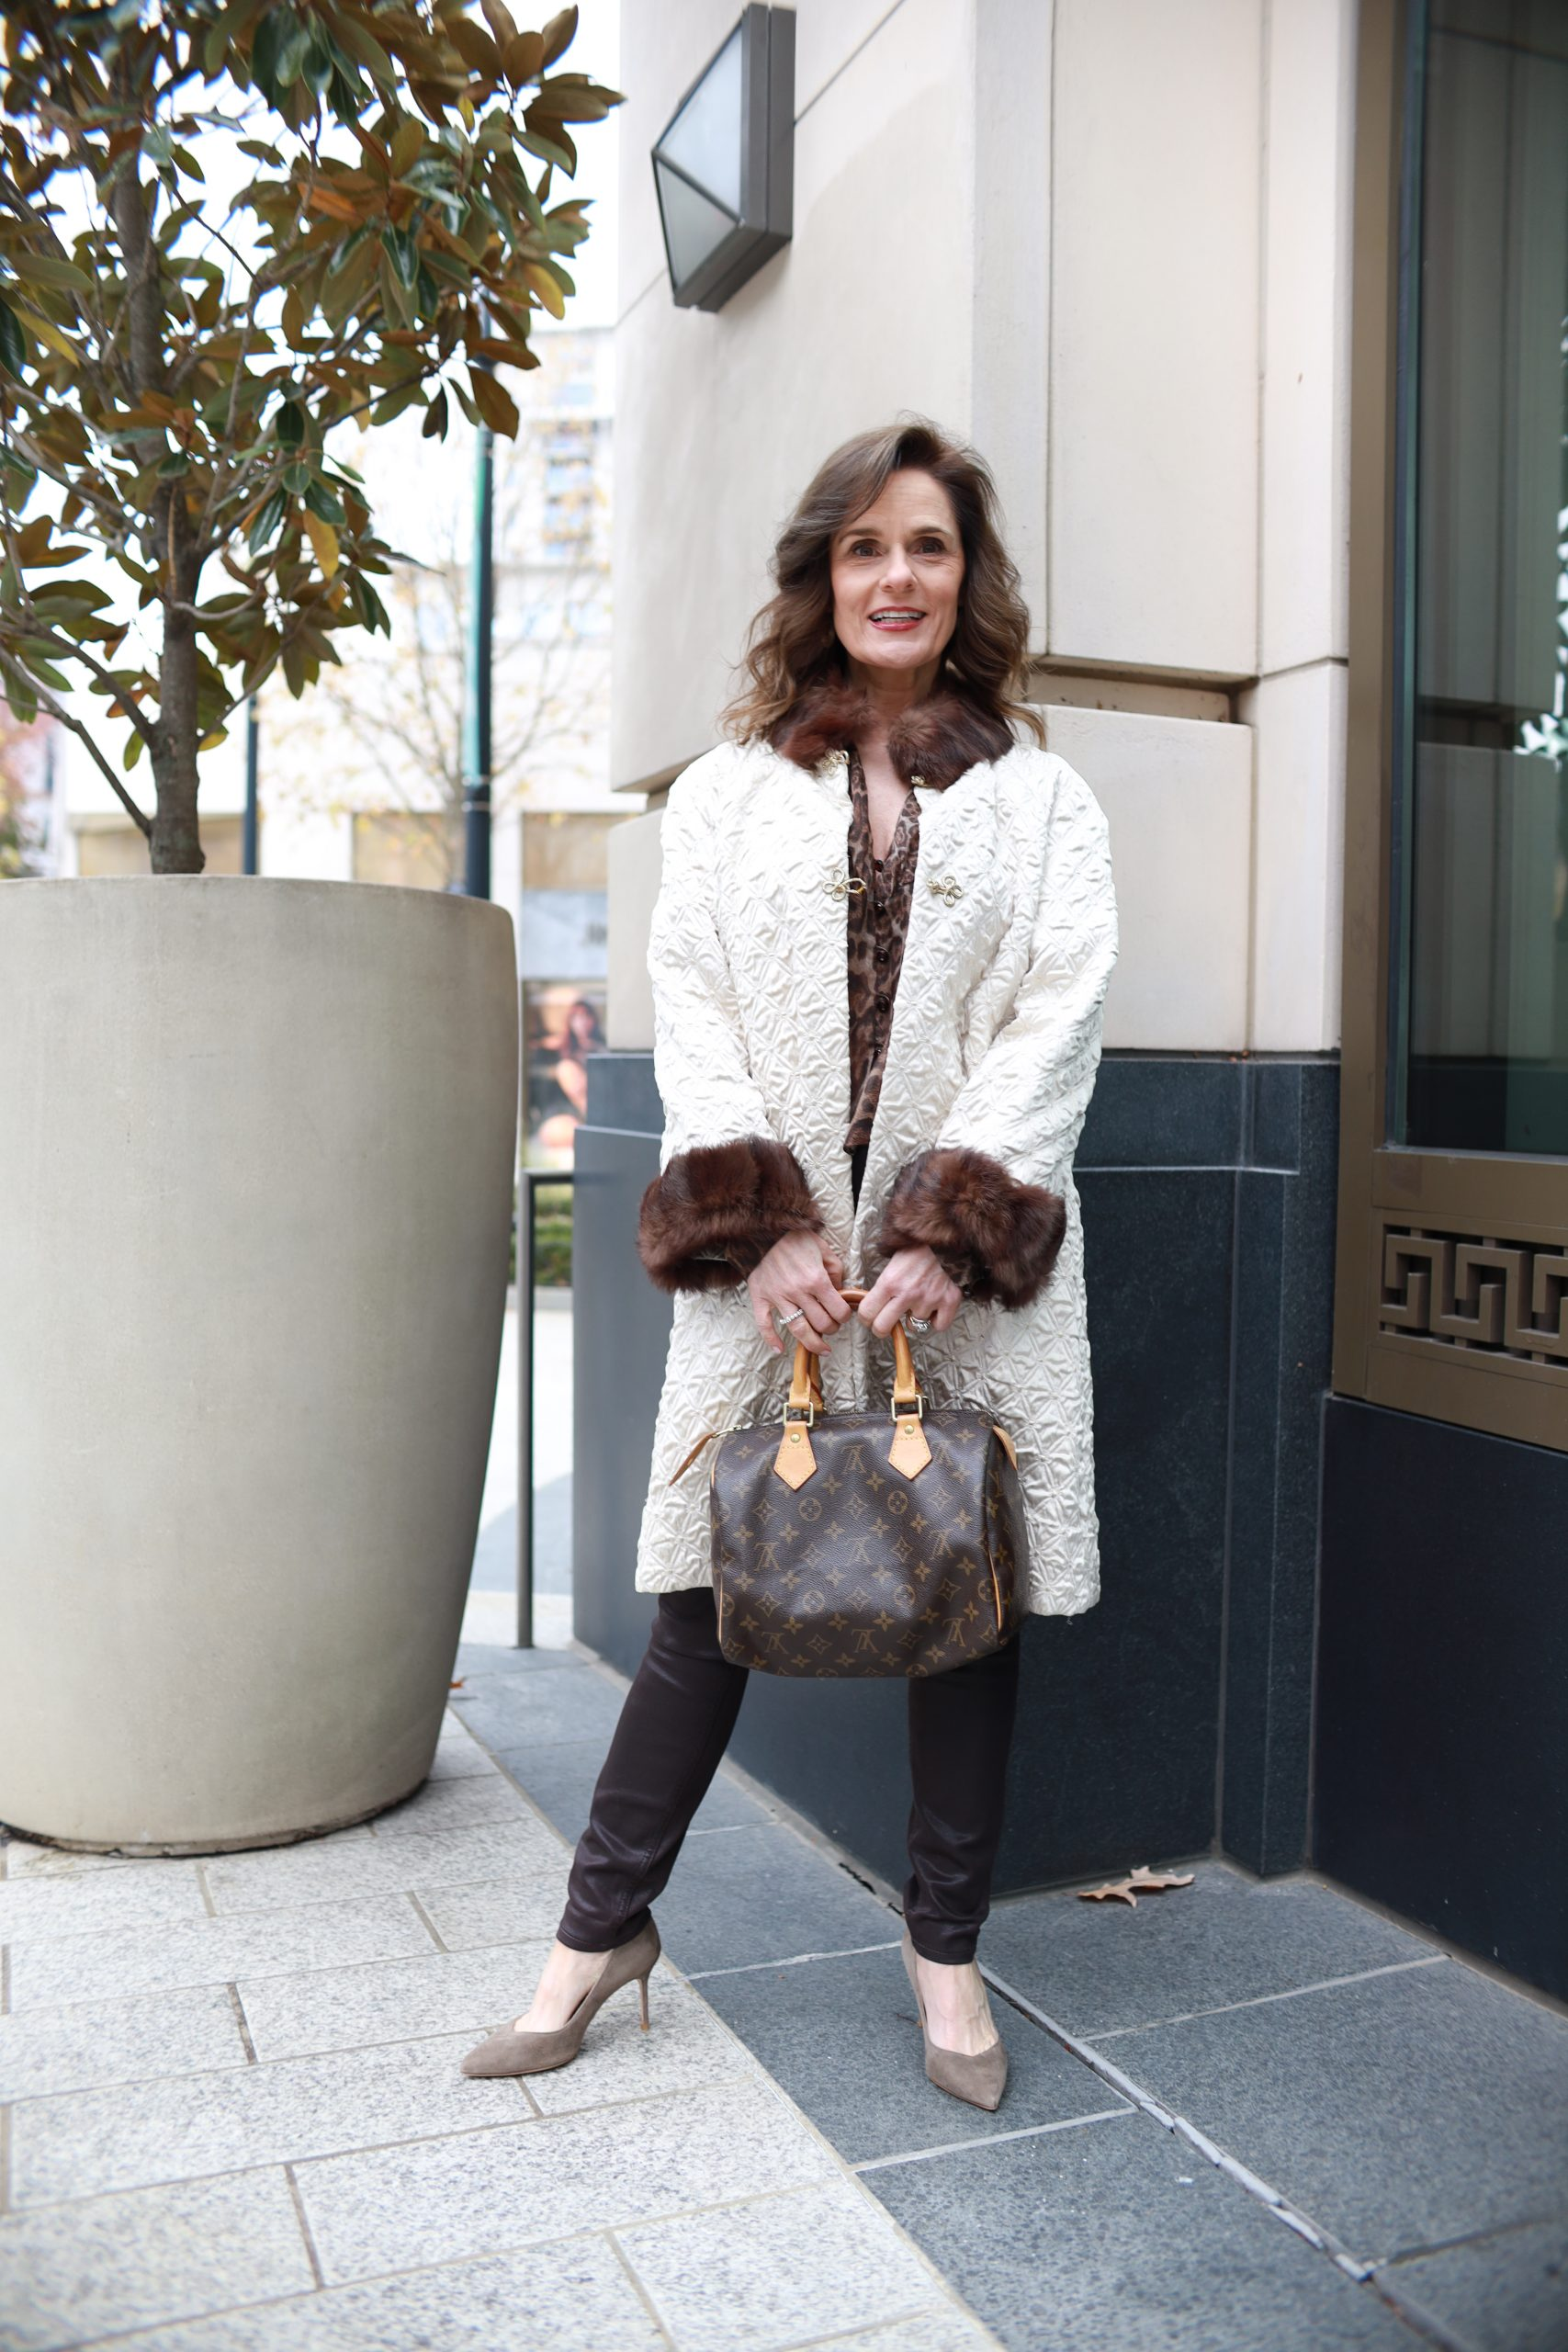 woman over 50 wearing a vintage cream colored coat trimmed in fur, brown skinny pants, carrying a Louis Vuitton handbag wearing neutral suede pumps pump perfection